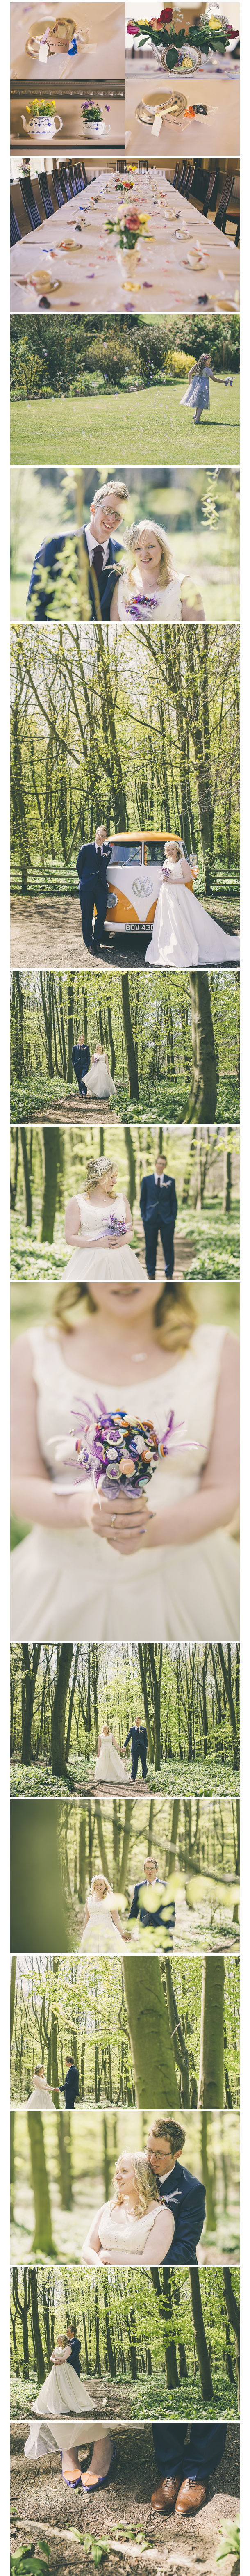 NeilJacksonPhotographicScarboroughYorkYorkshireWeddingPortraitCommercialPhotographerOxPastureHallScarboroughWeddingBlog4